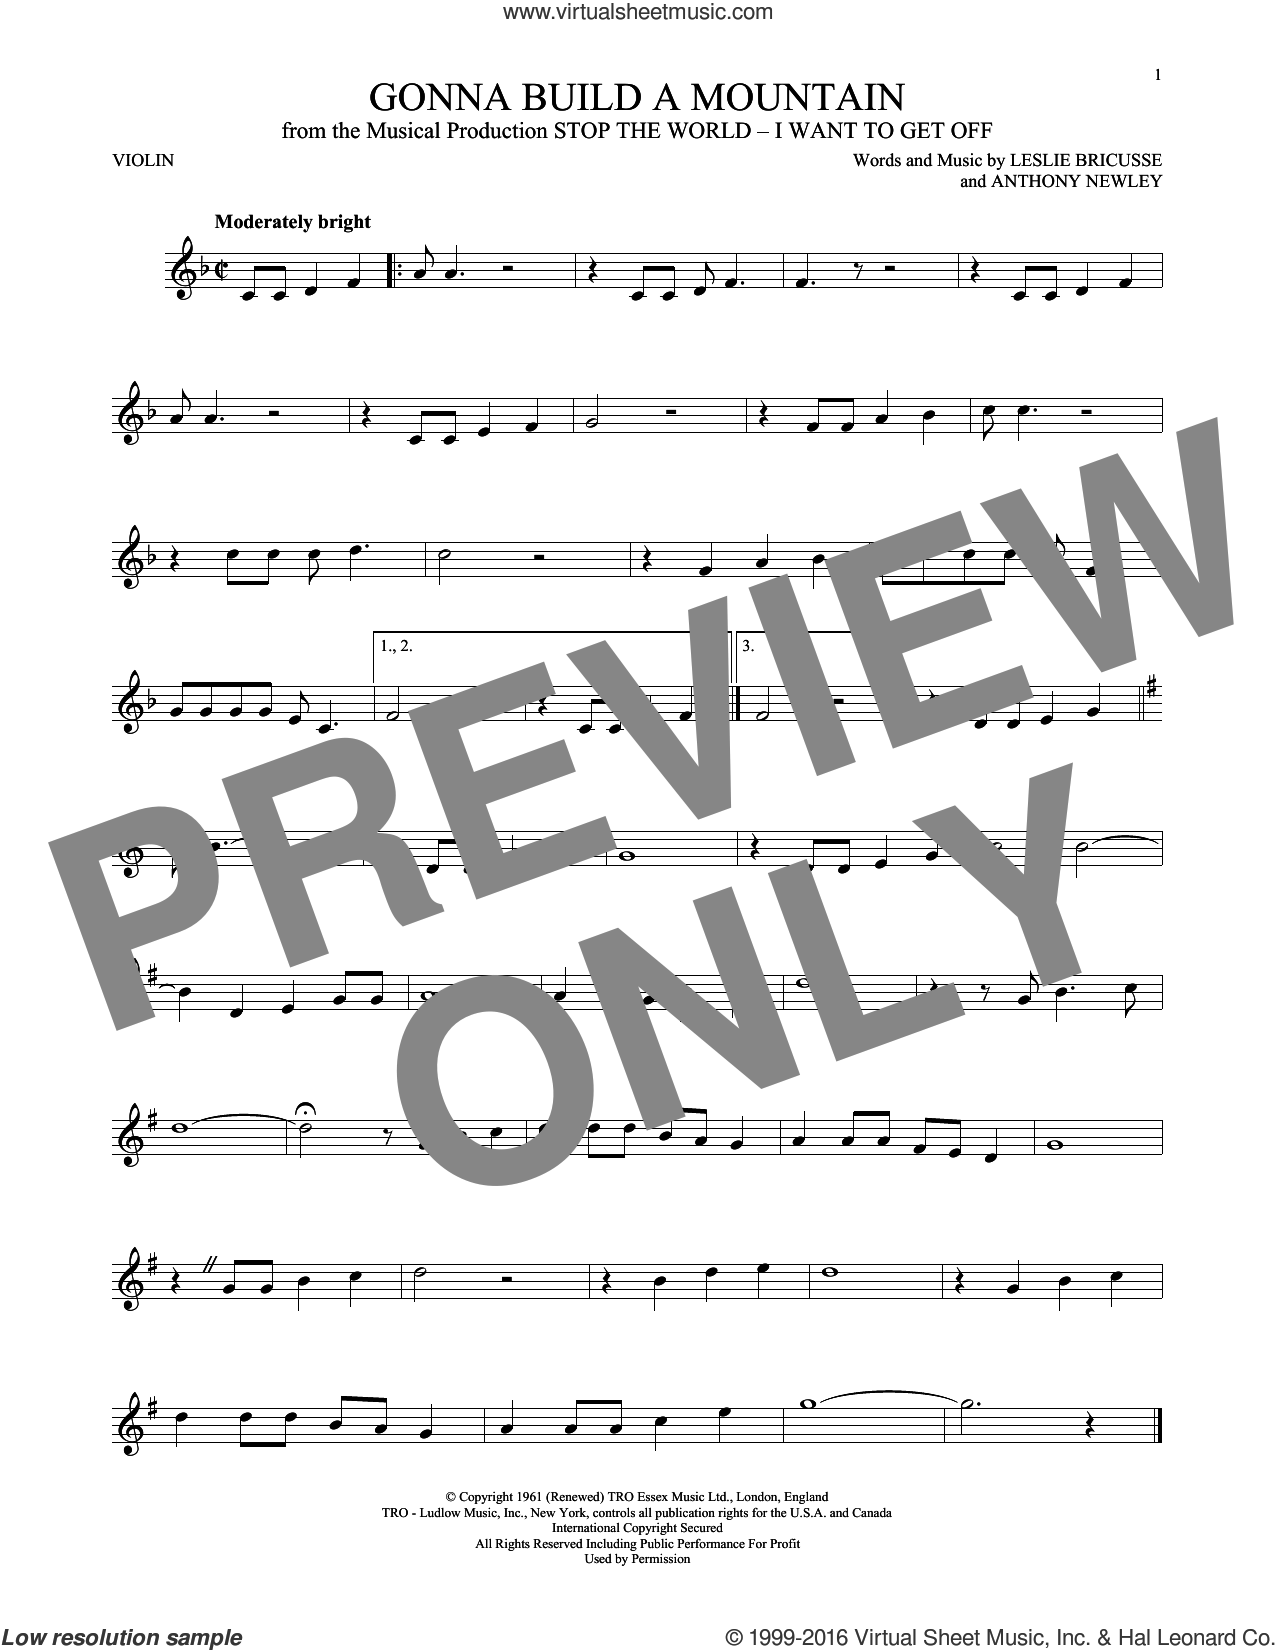 Gonna Build A Mountain sheet music for violin solo by Anthony Newley